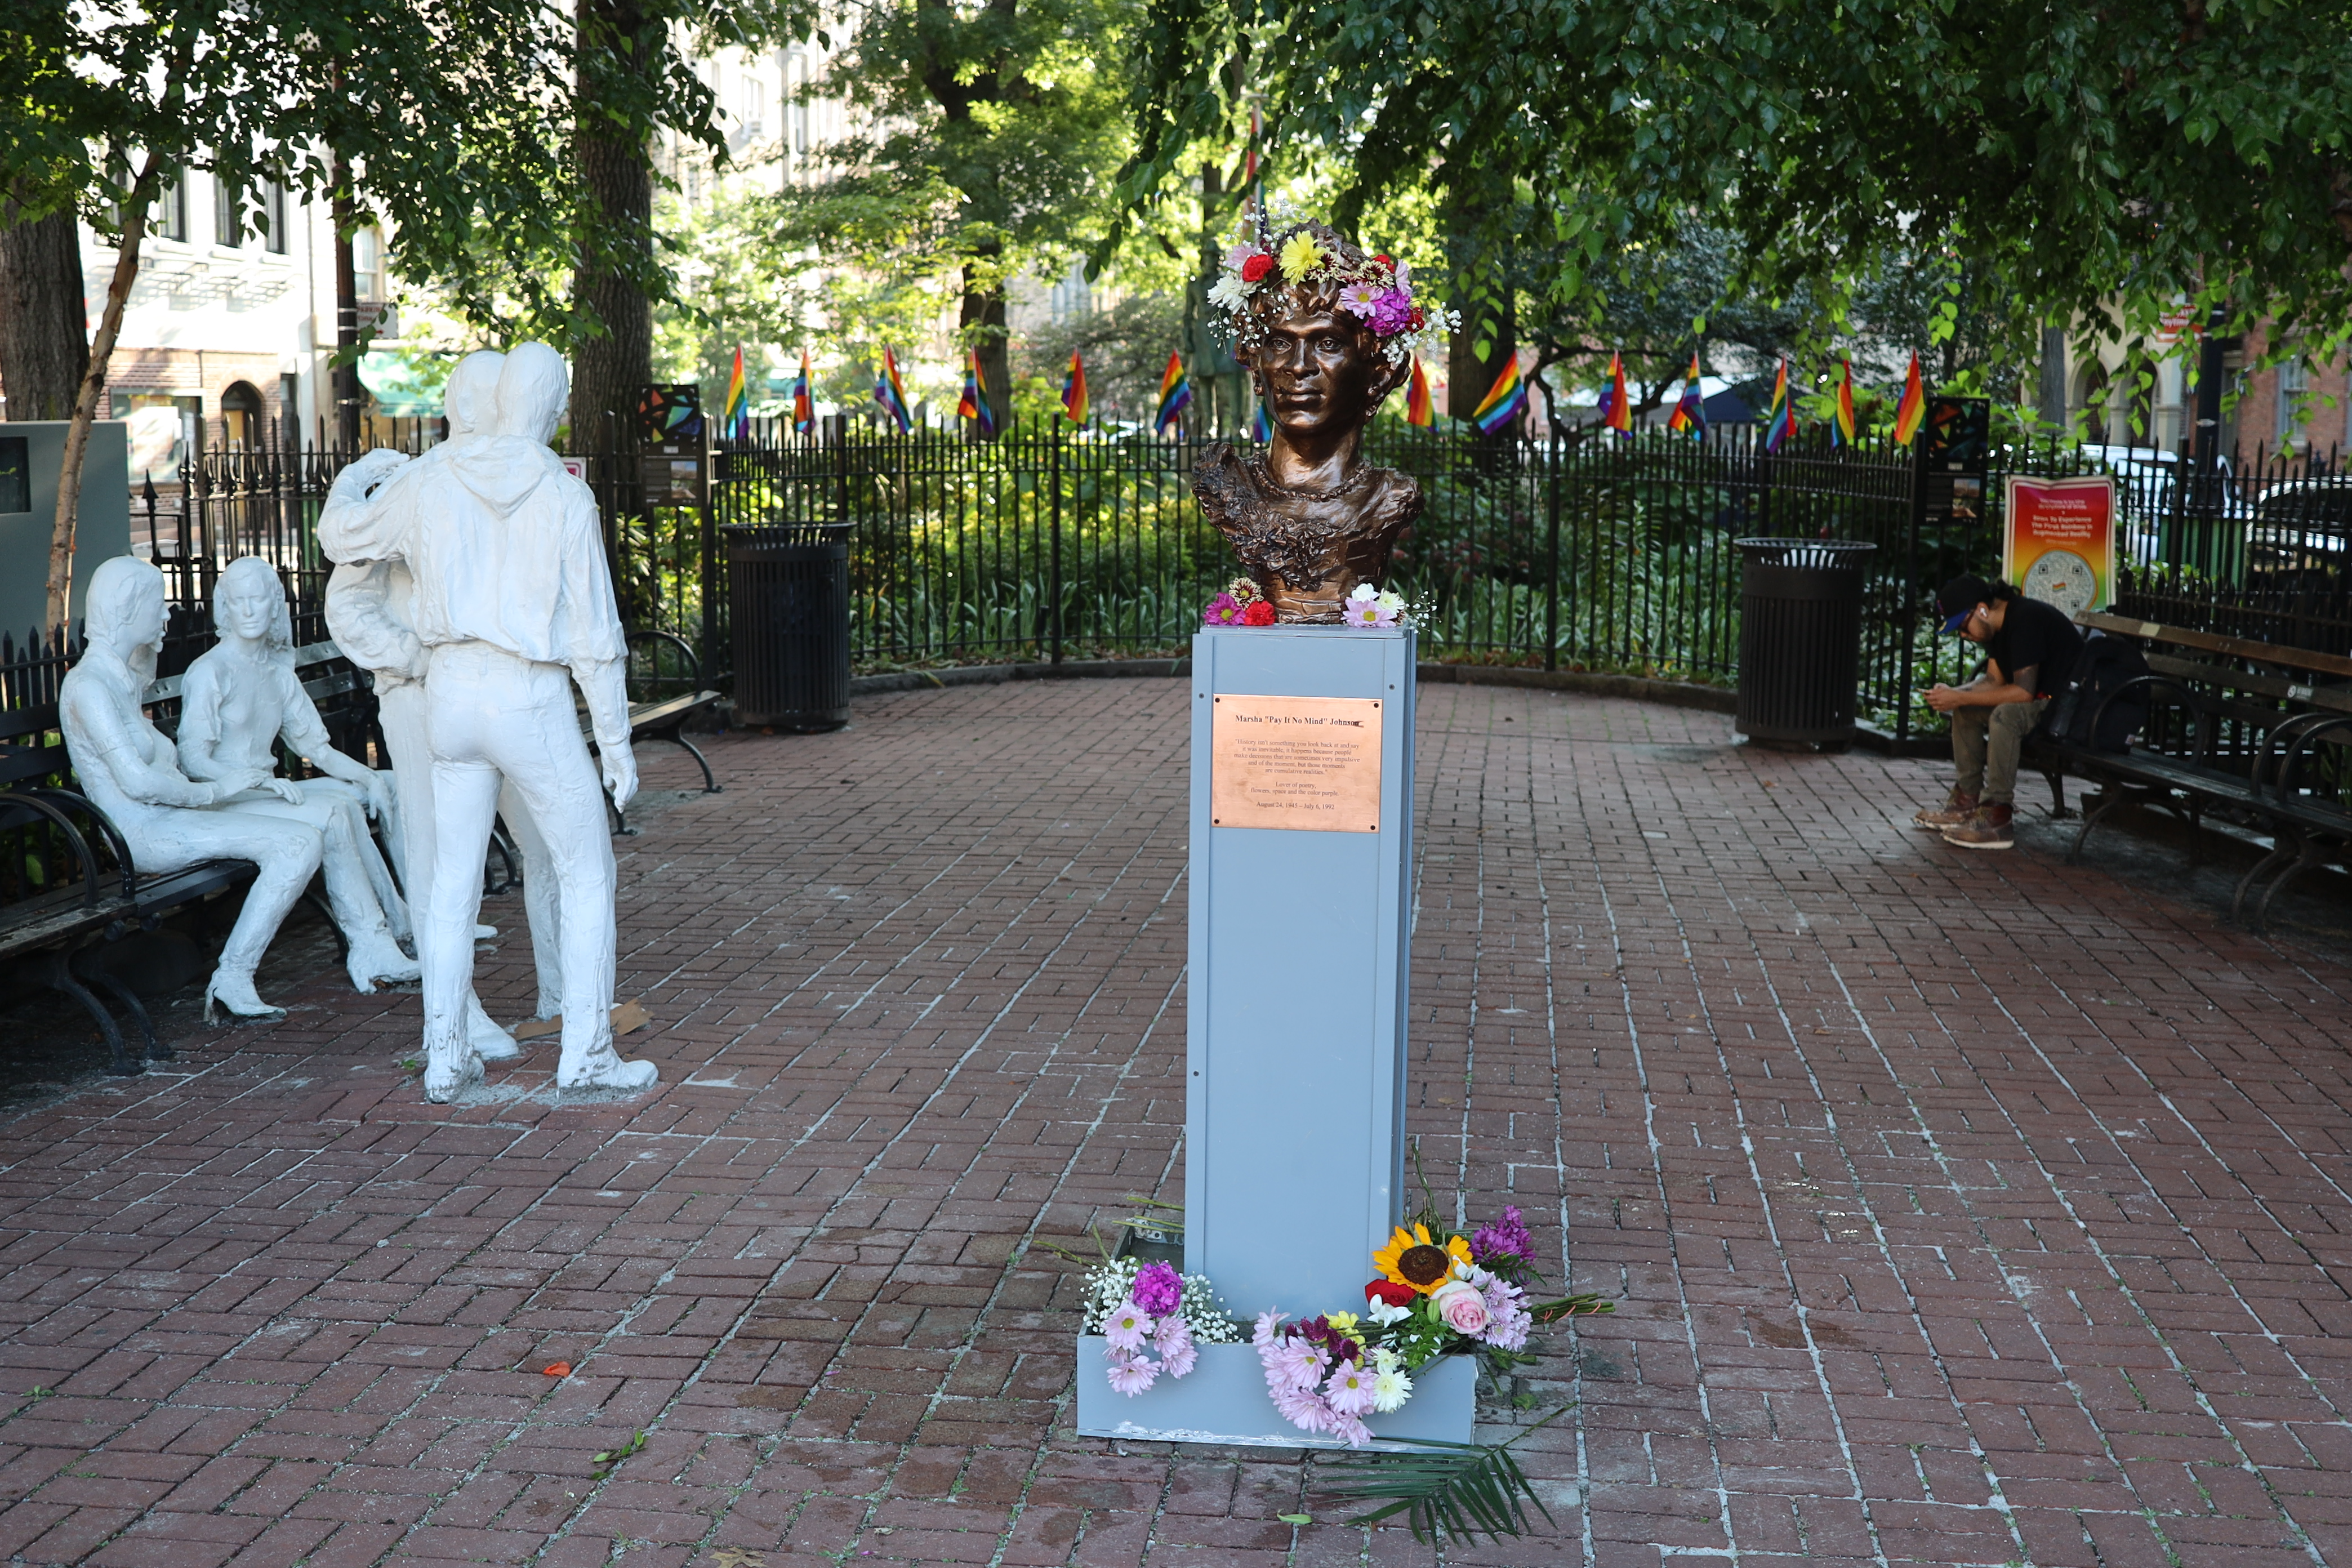 The new Marsha P Johnson bust in Christopher Park, with the Gay Liberation Monument in the background.